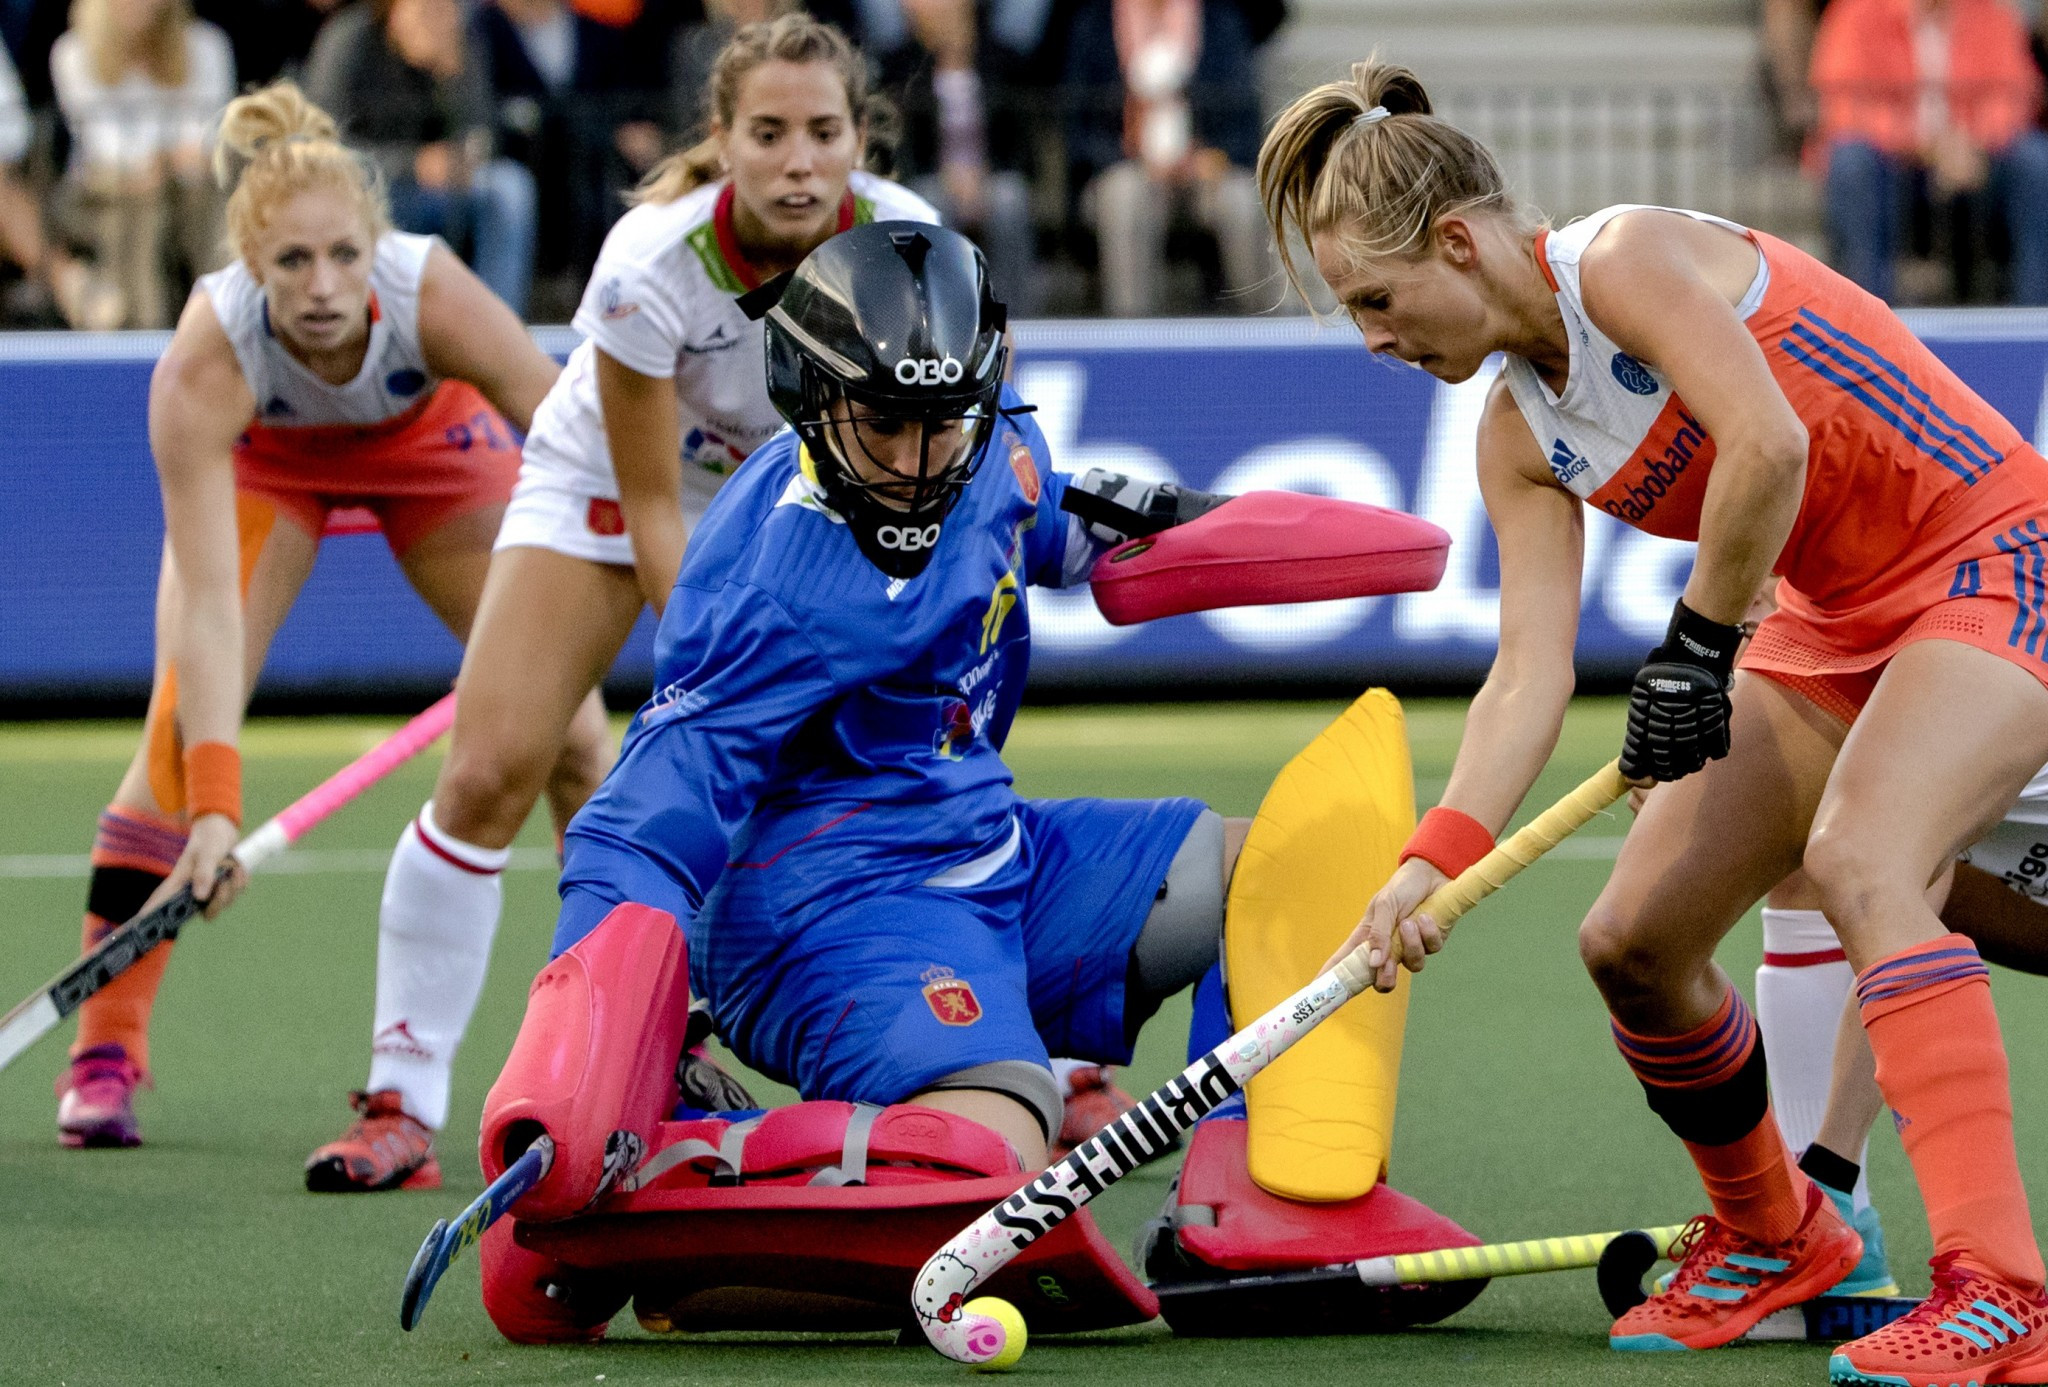 Hosts claim victory on weather interrupted opening day of EuroHockey Championships